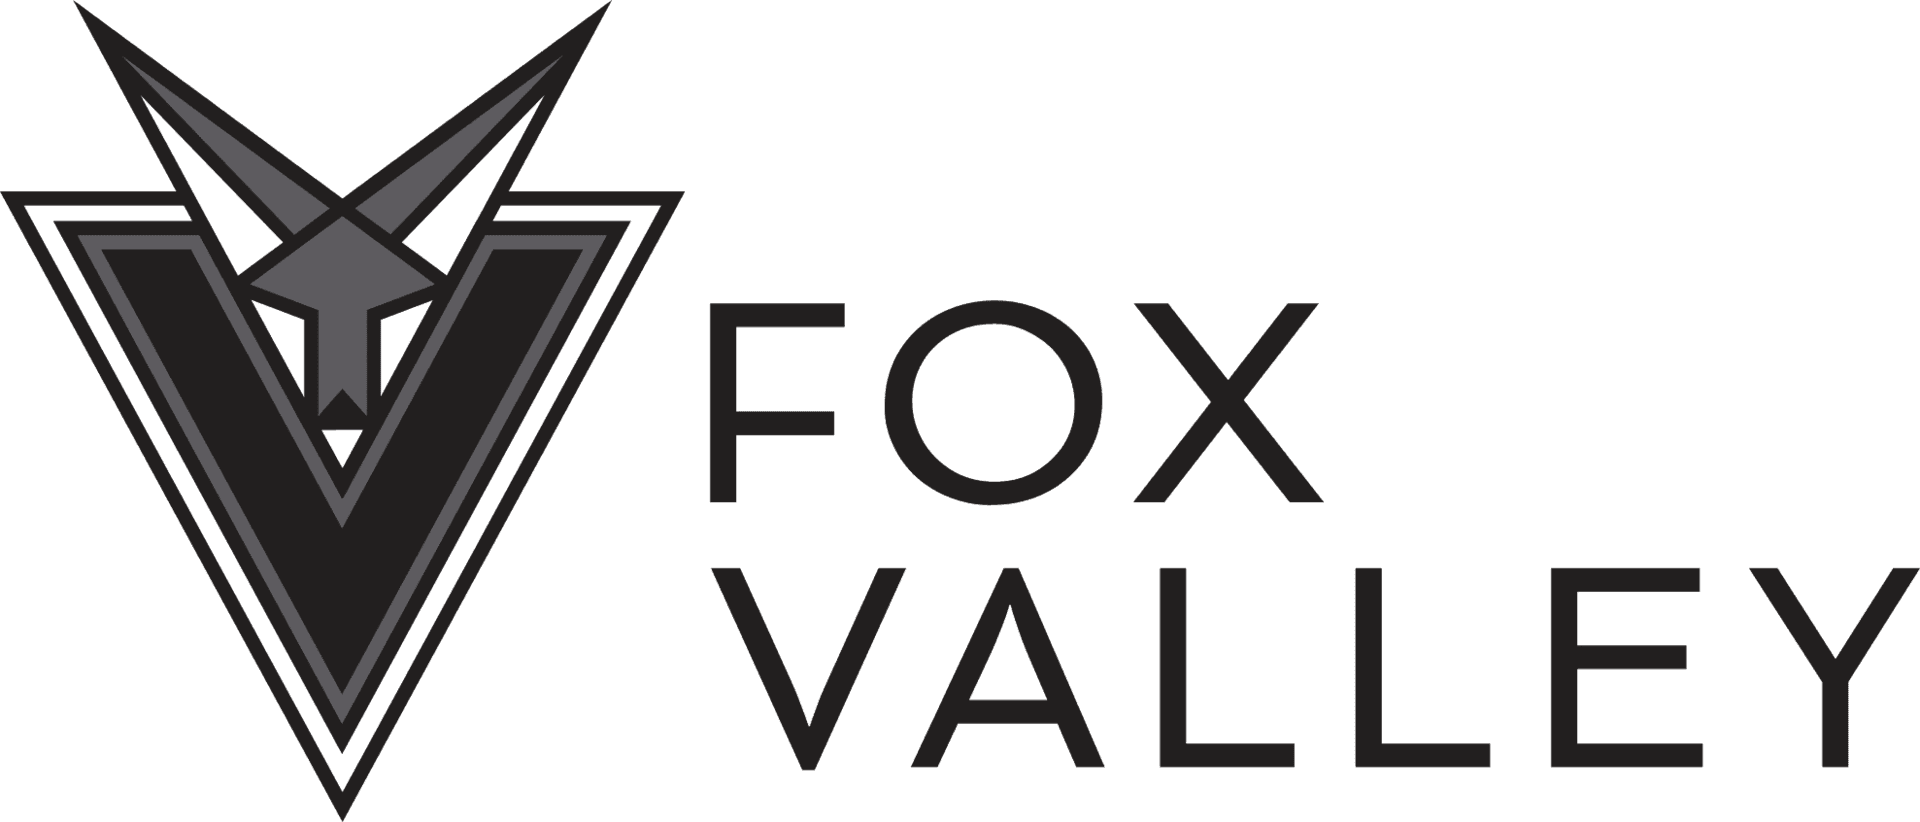 fox valley black personals The fox valley surgical associates home page has information about the fvsa facility and the surgical care provided in  a shared philosophy of exceptional care.